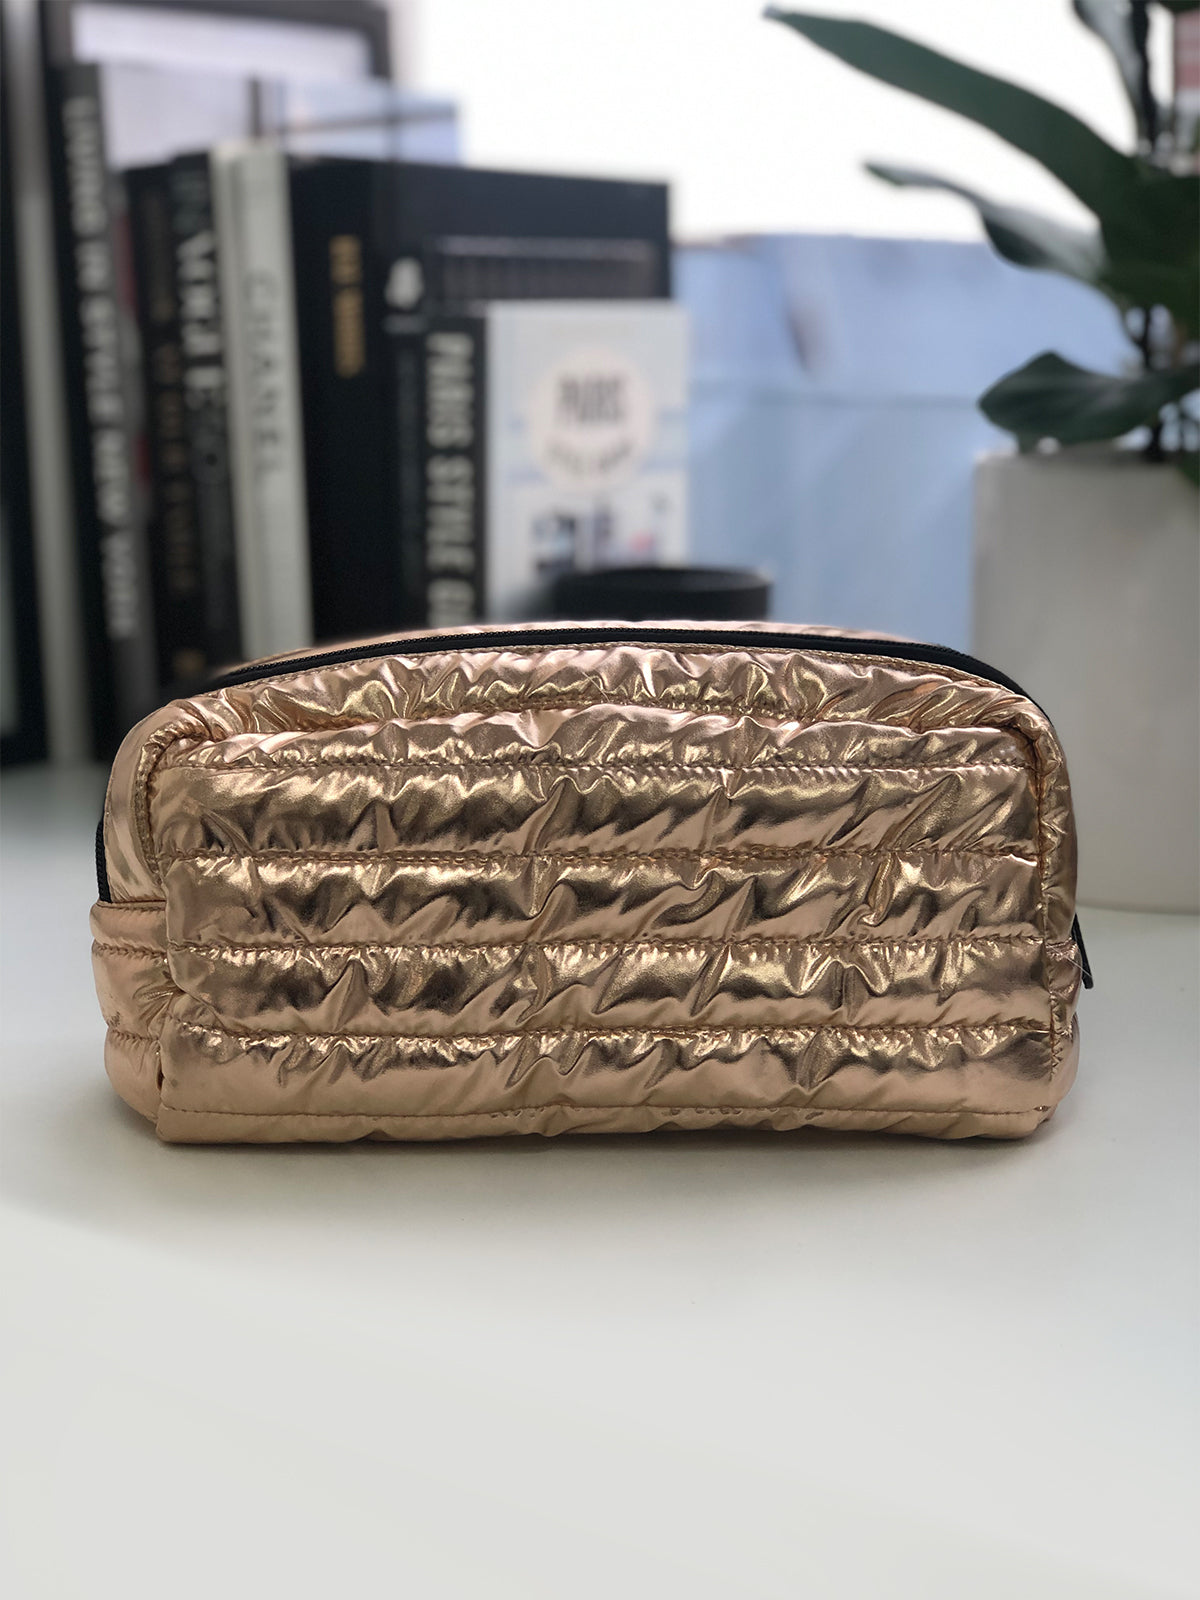 BACKSTAGE PASS CLUTCH IN ROSE GOLD